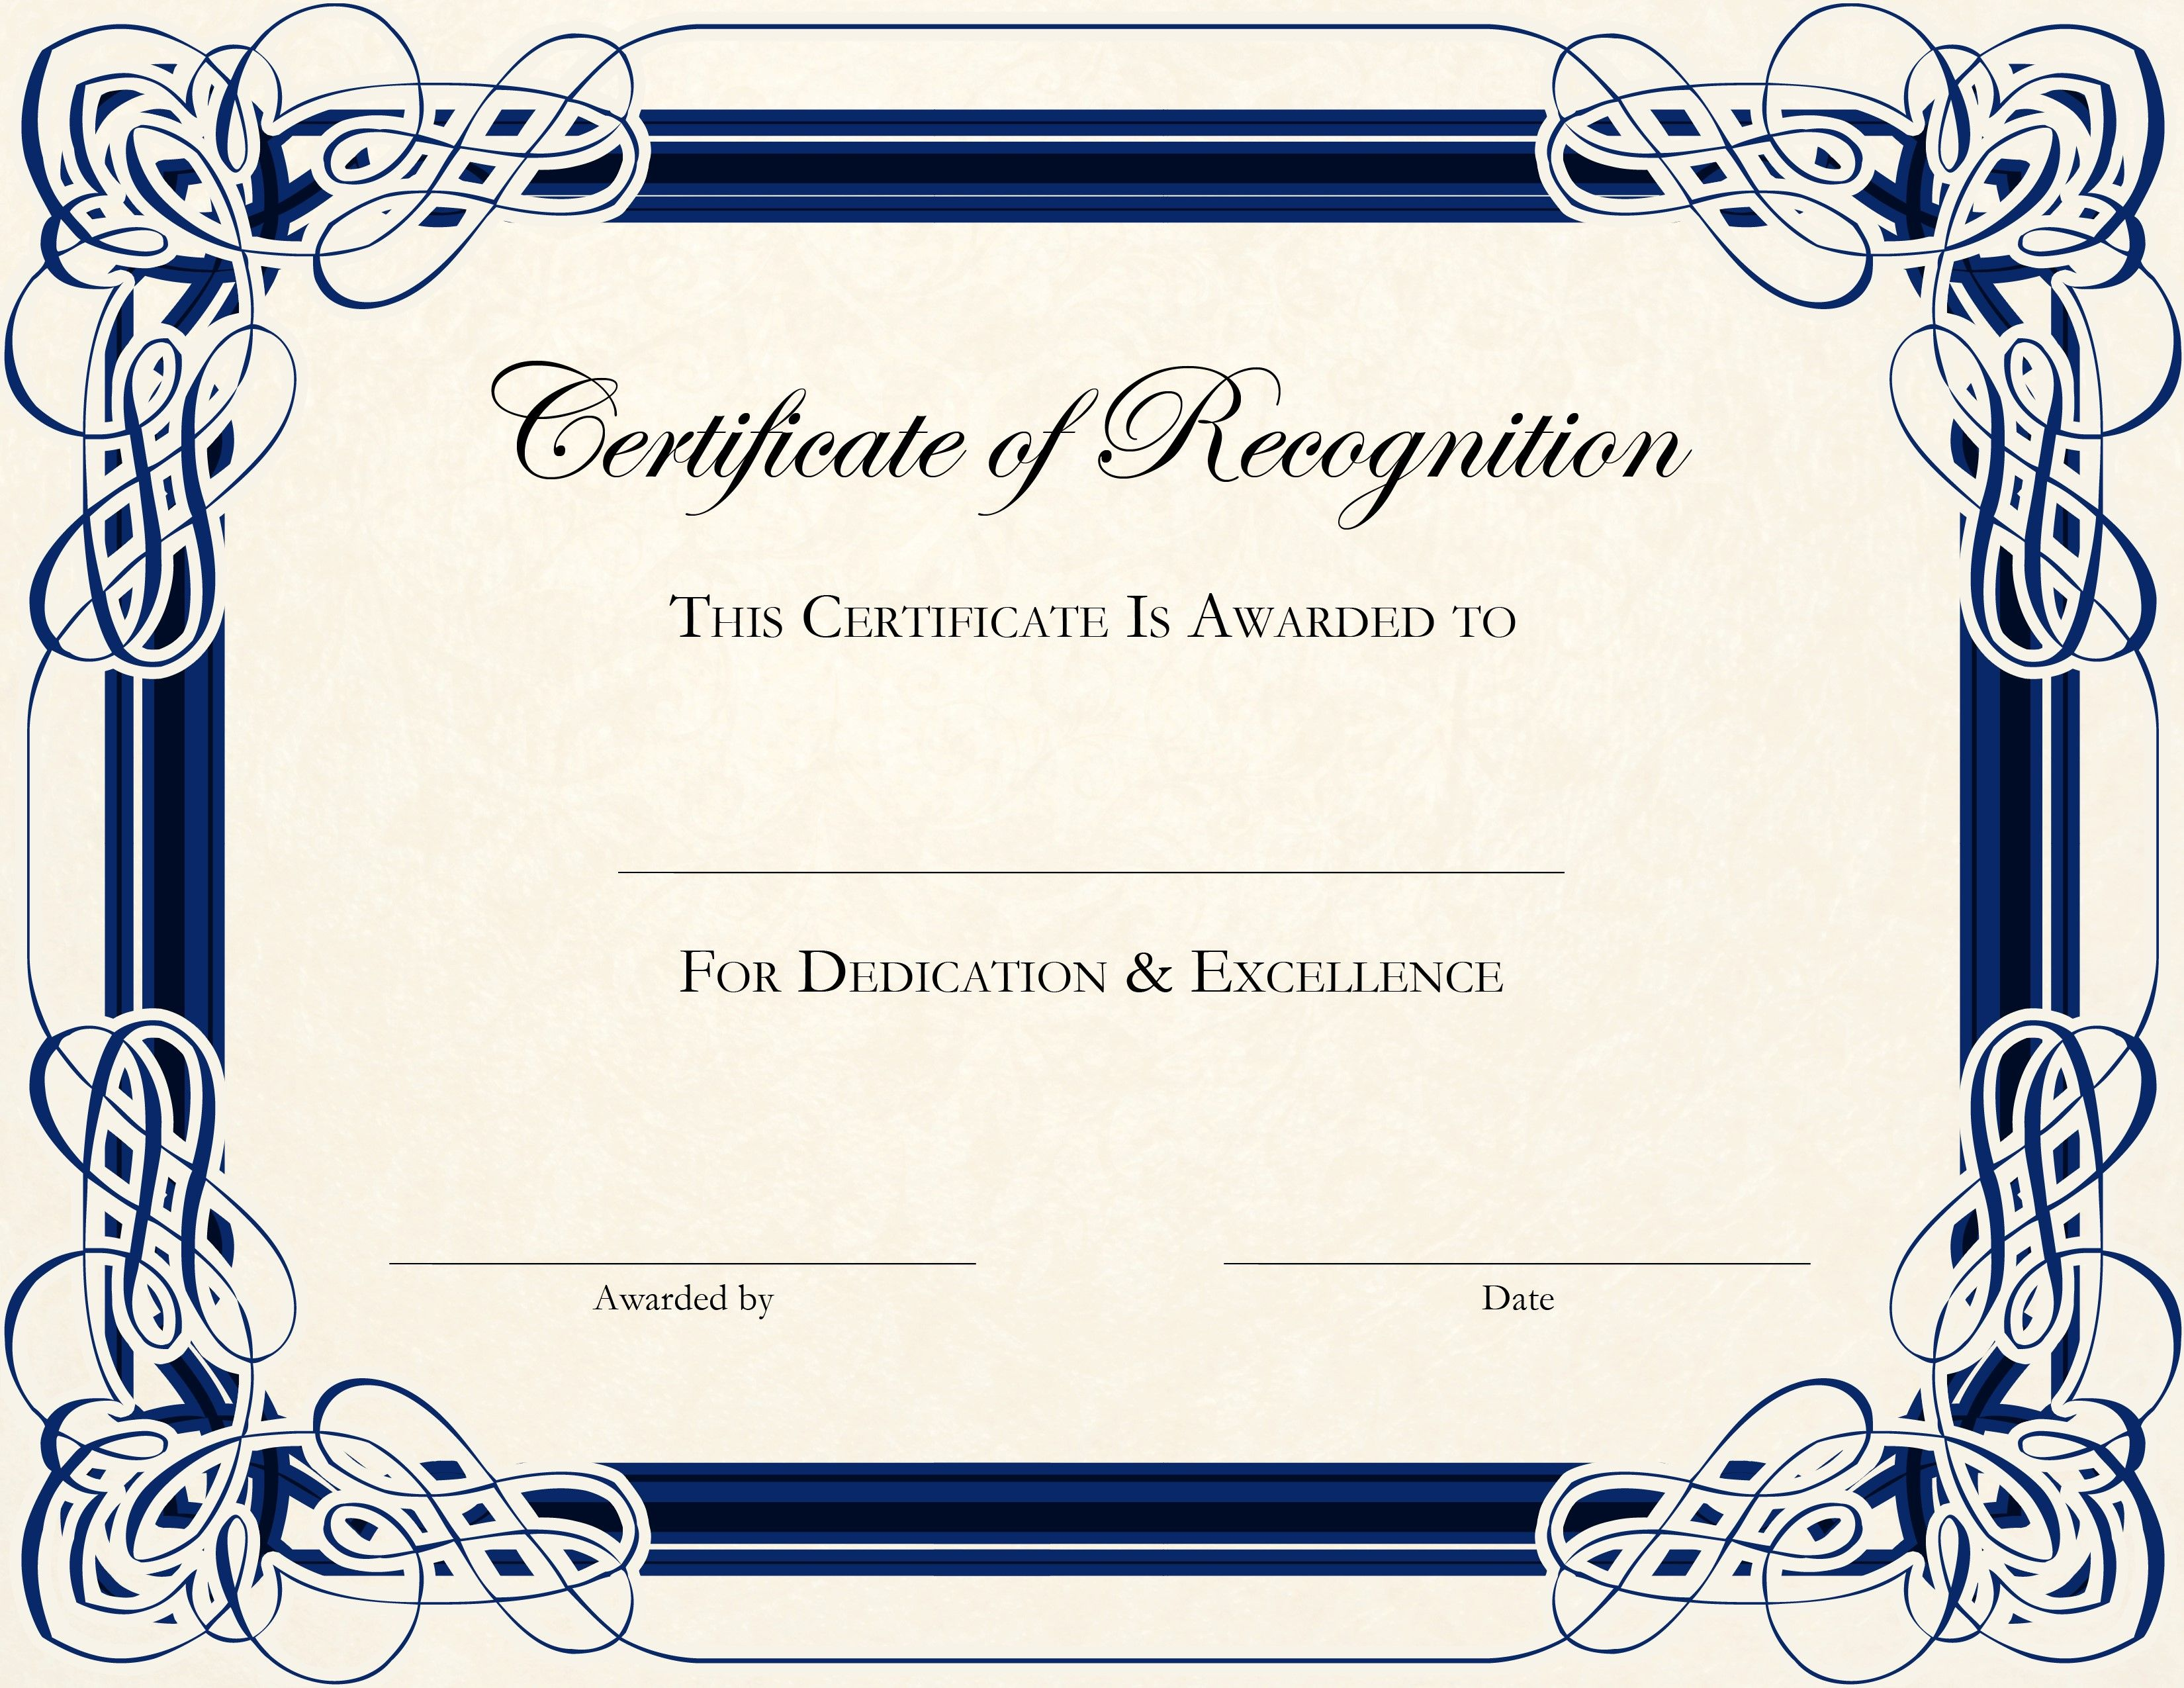 Doc27502125 Free Printable Certificate Templates Certificate – Certificates Free Download Free Printable